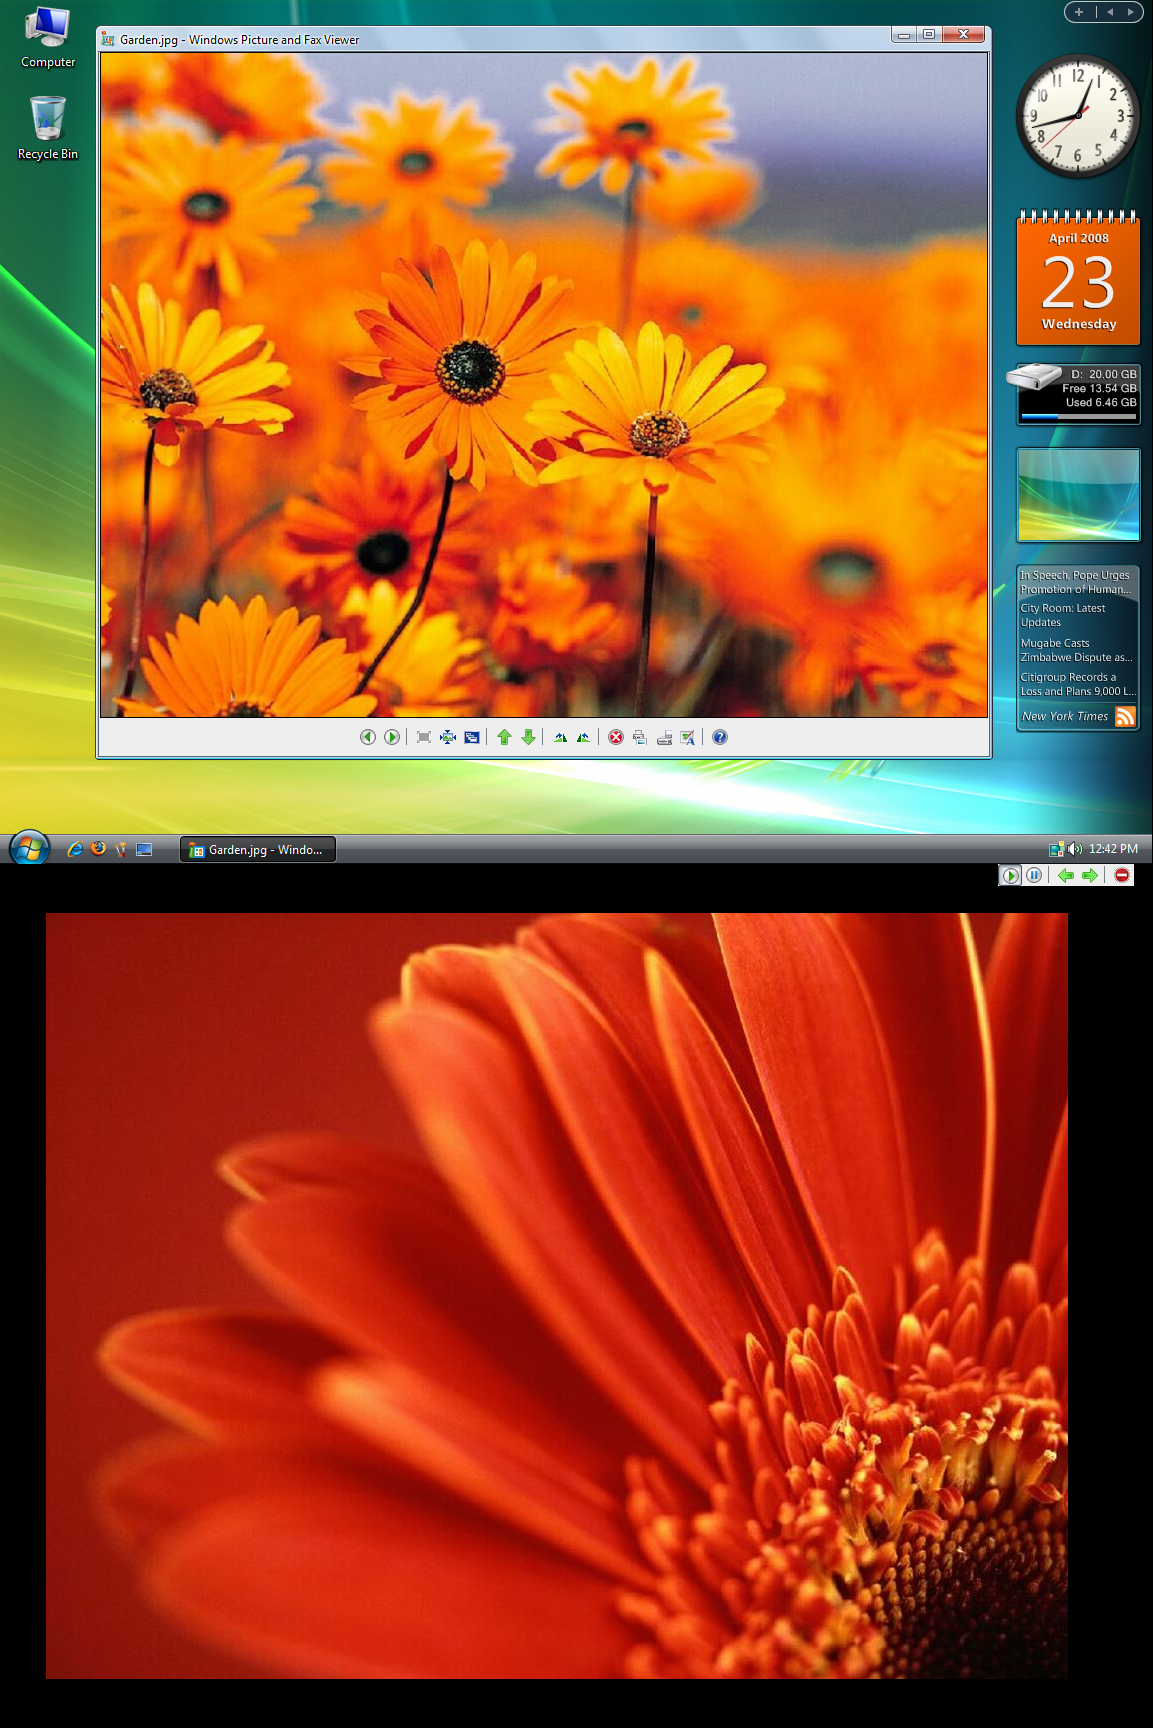 How to open Windows 8.1 Fax and Scan, to scan and fax the Windows pictures and fax viewer